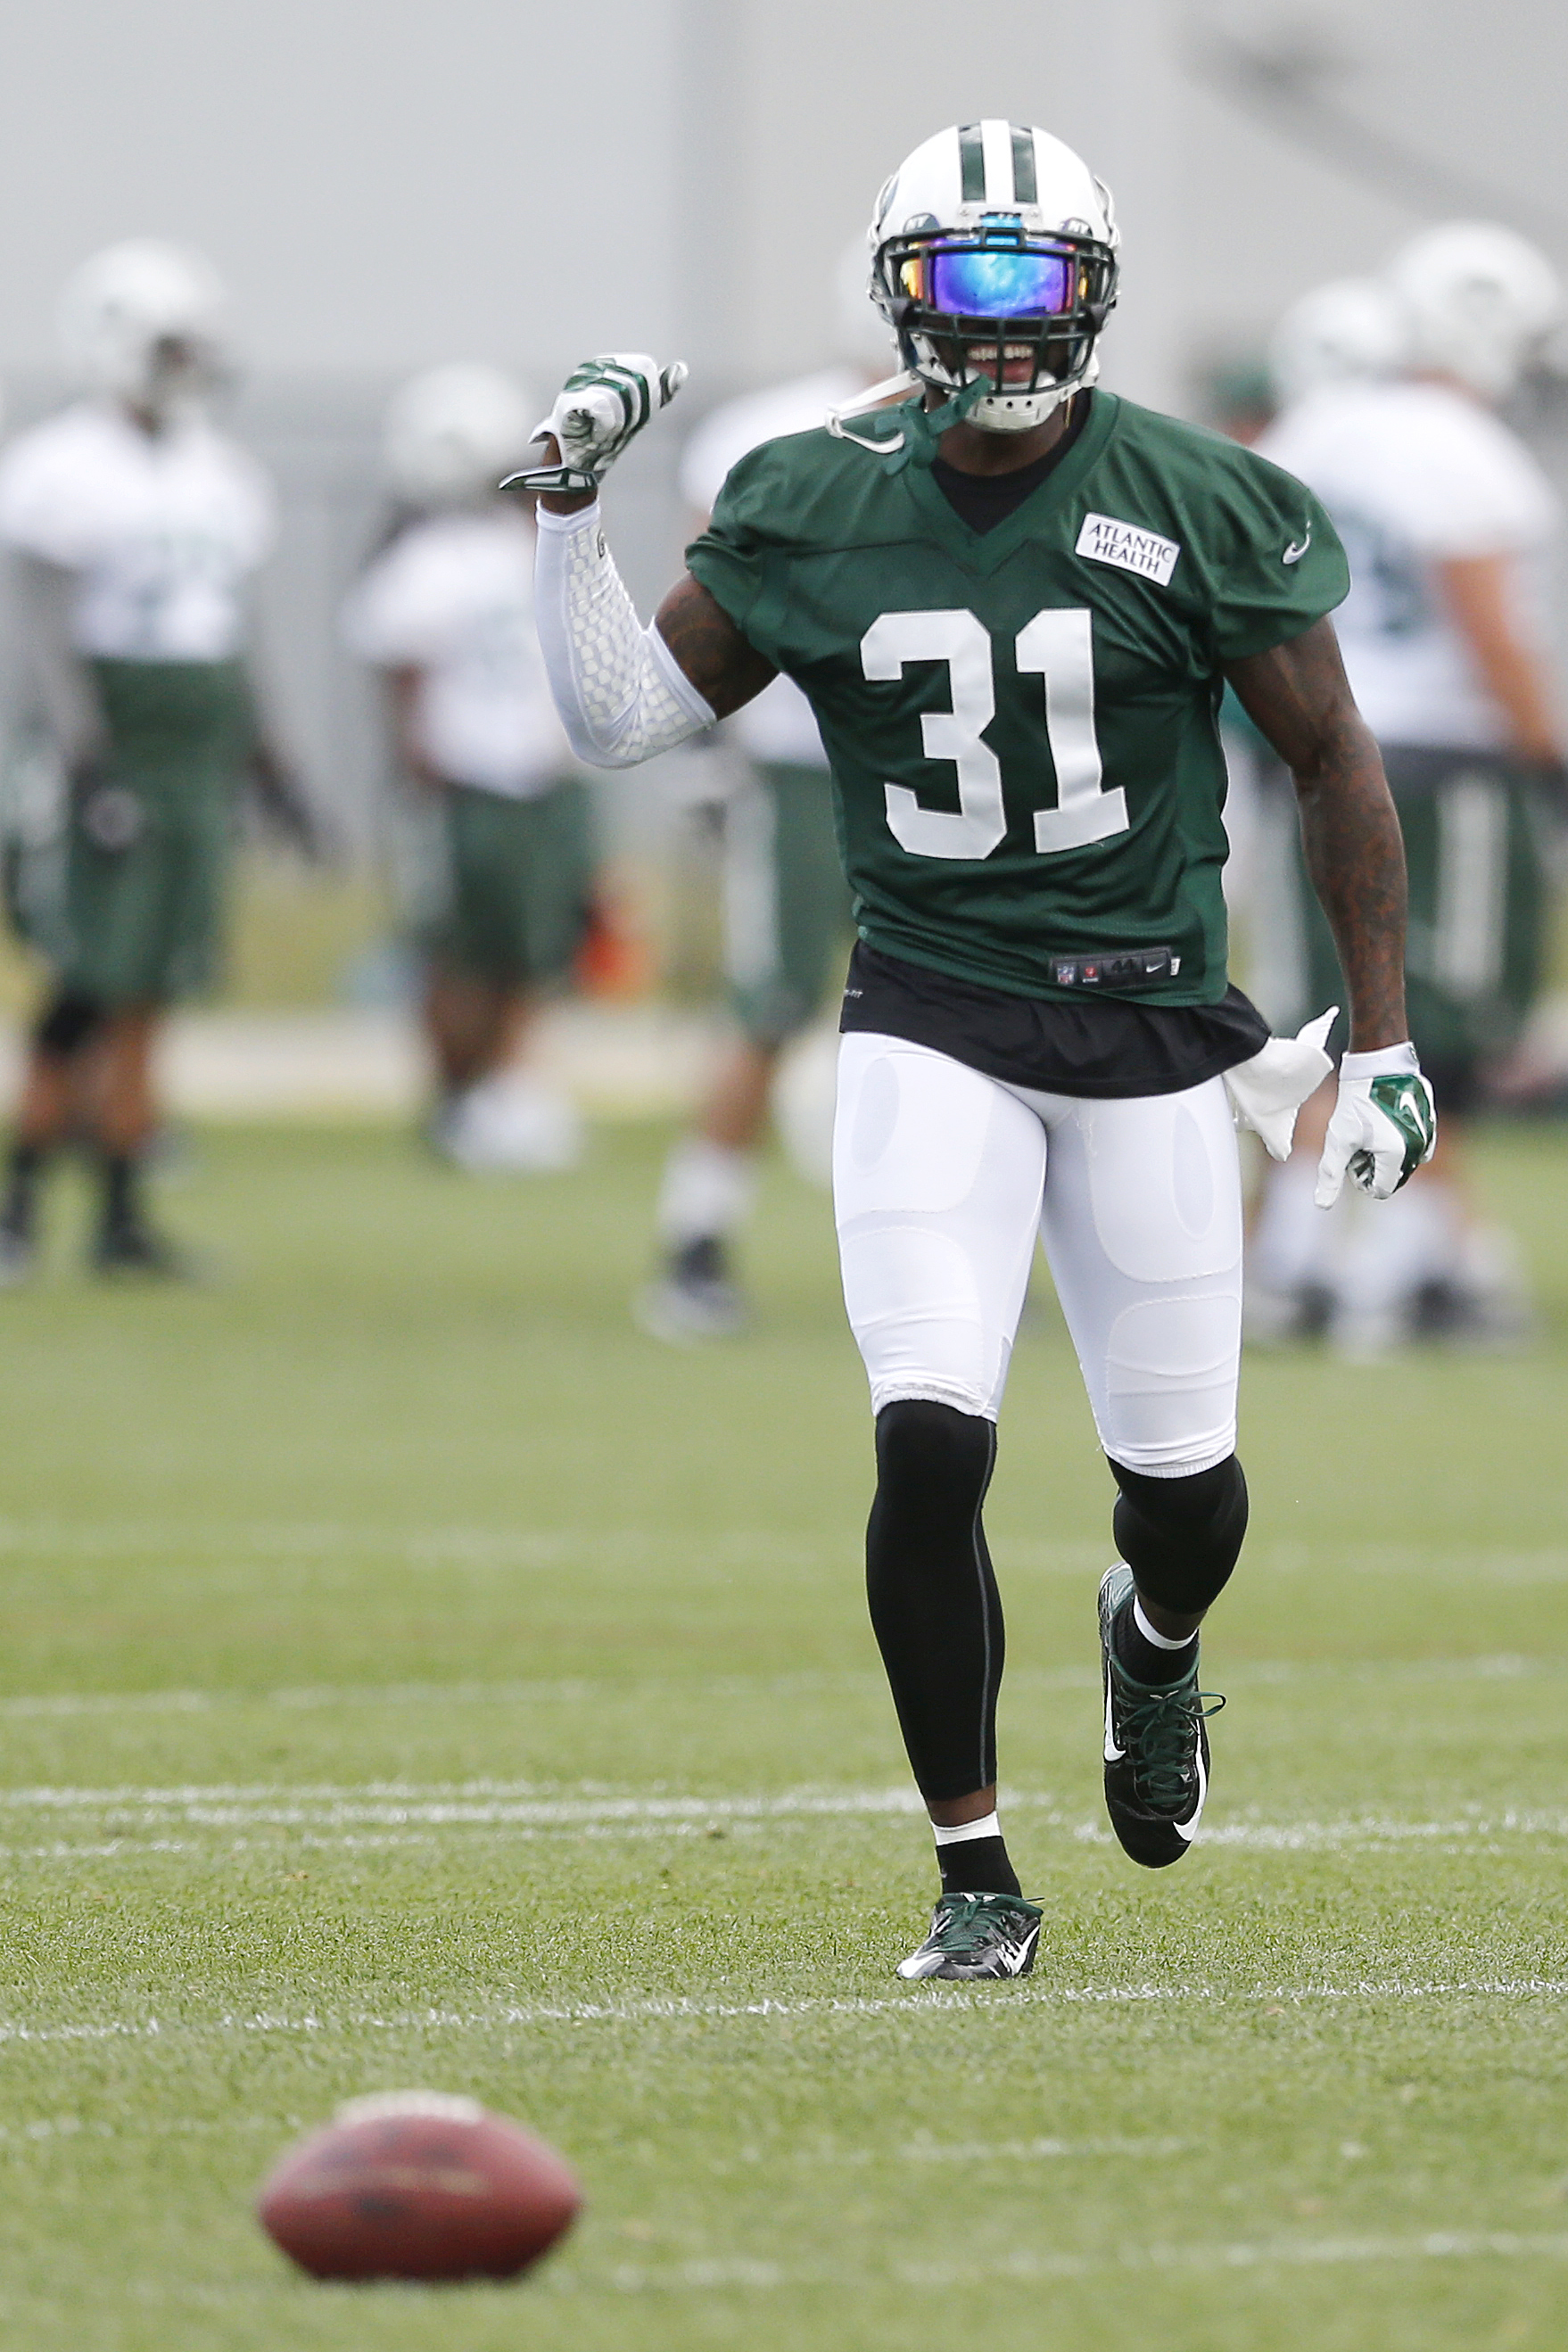 New York Jets cornerback Antonio Cromartie laughs after running a drill during a mandatory minicamp at the NFL football team's facility, Tuesday, June 9, 2015, in Florham Park, N.J. (AP Photo/Julio Cortez)